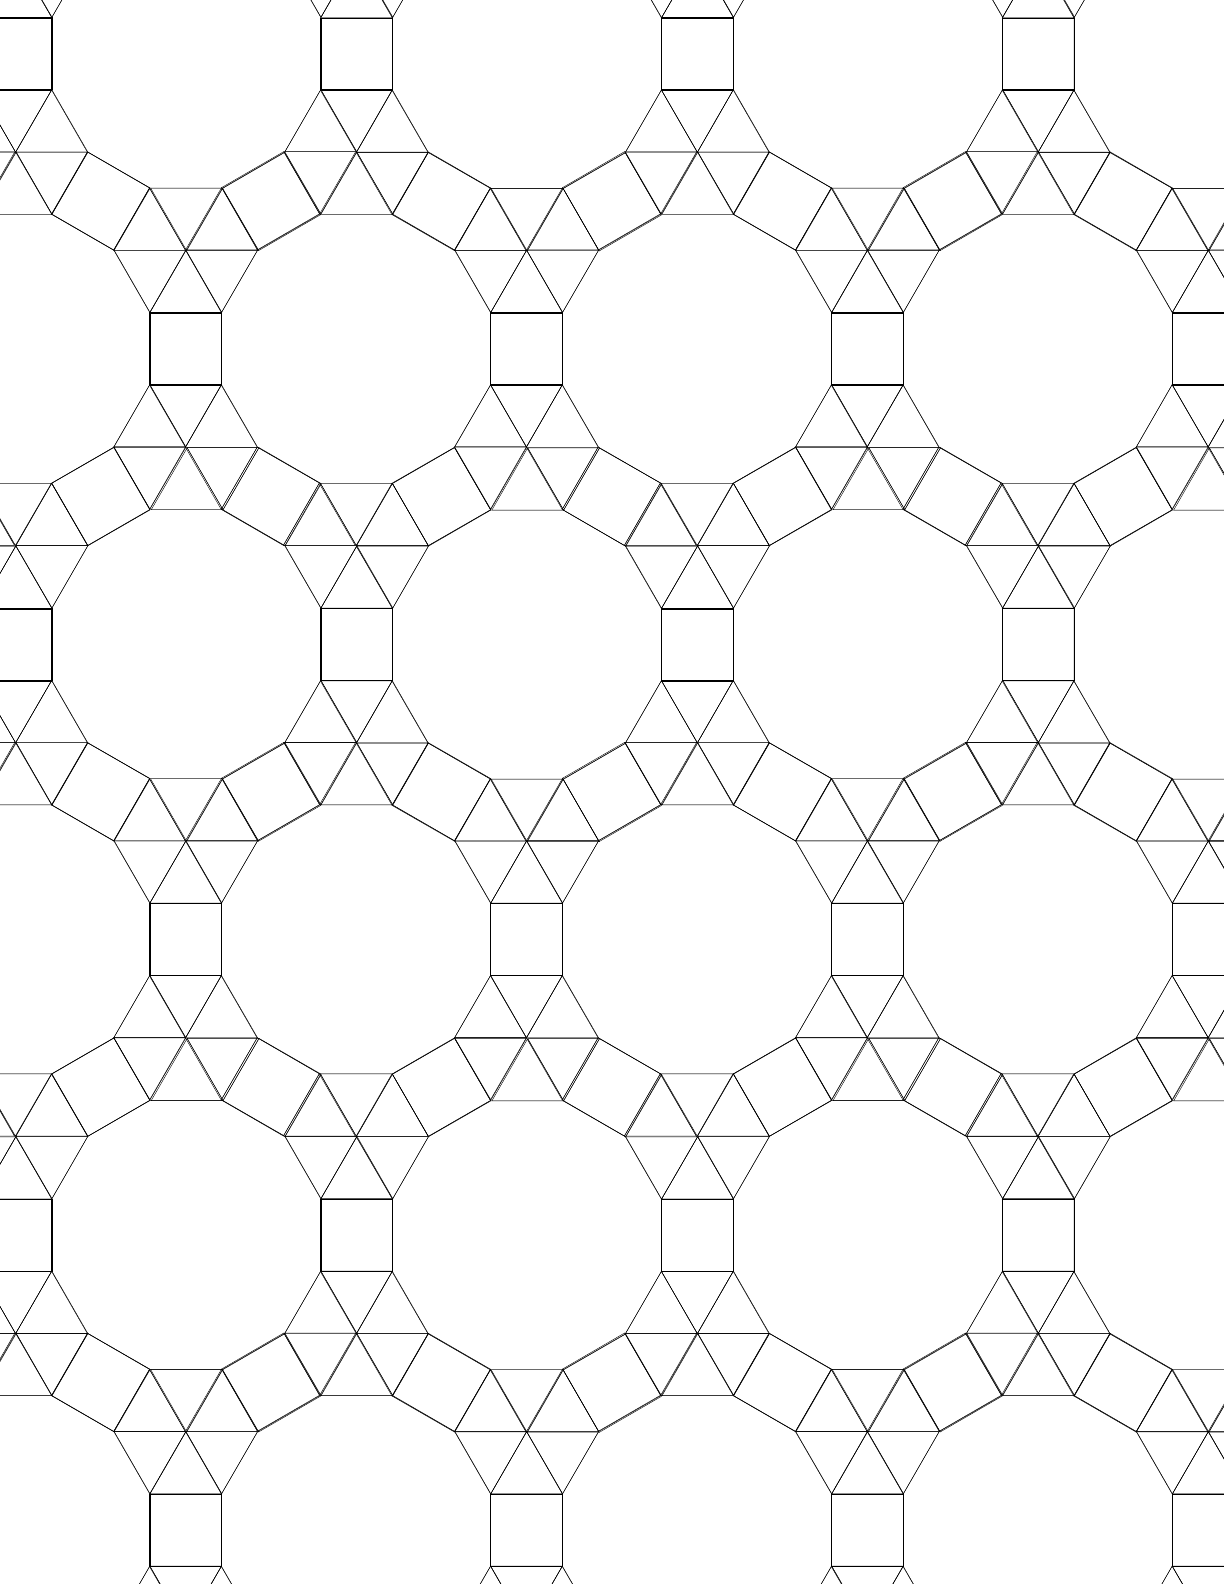 Small Tessellation Graph Paper (3.3.3.3.3,3.3.4.12) Free